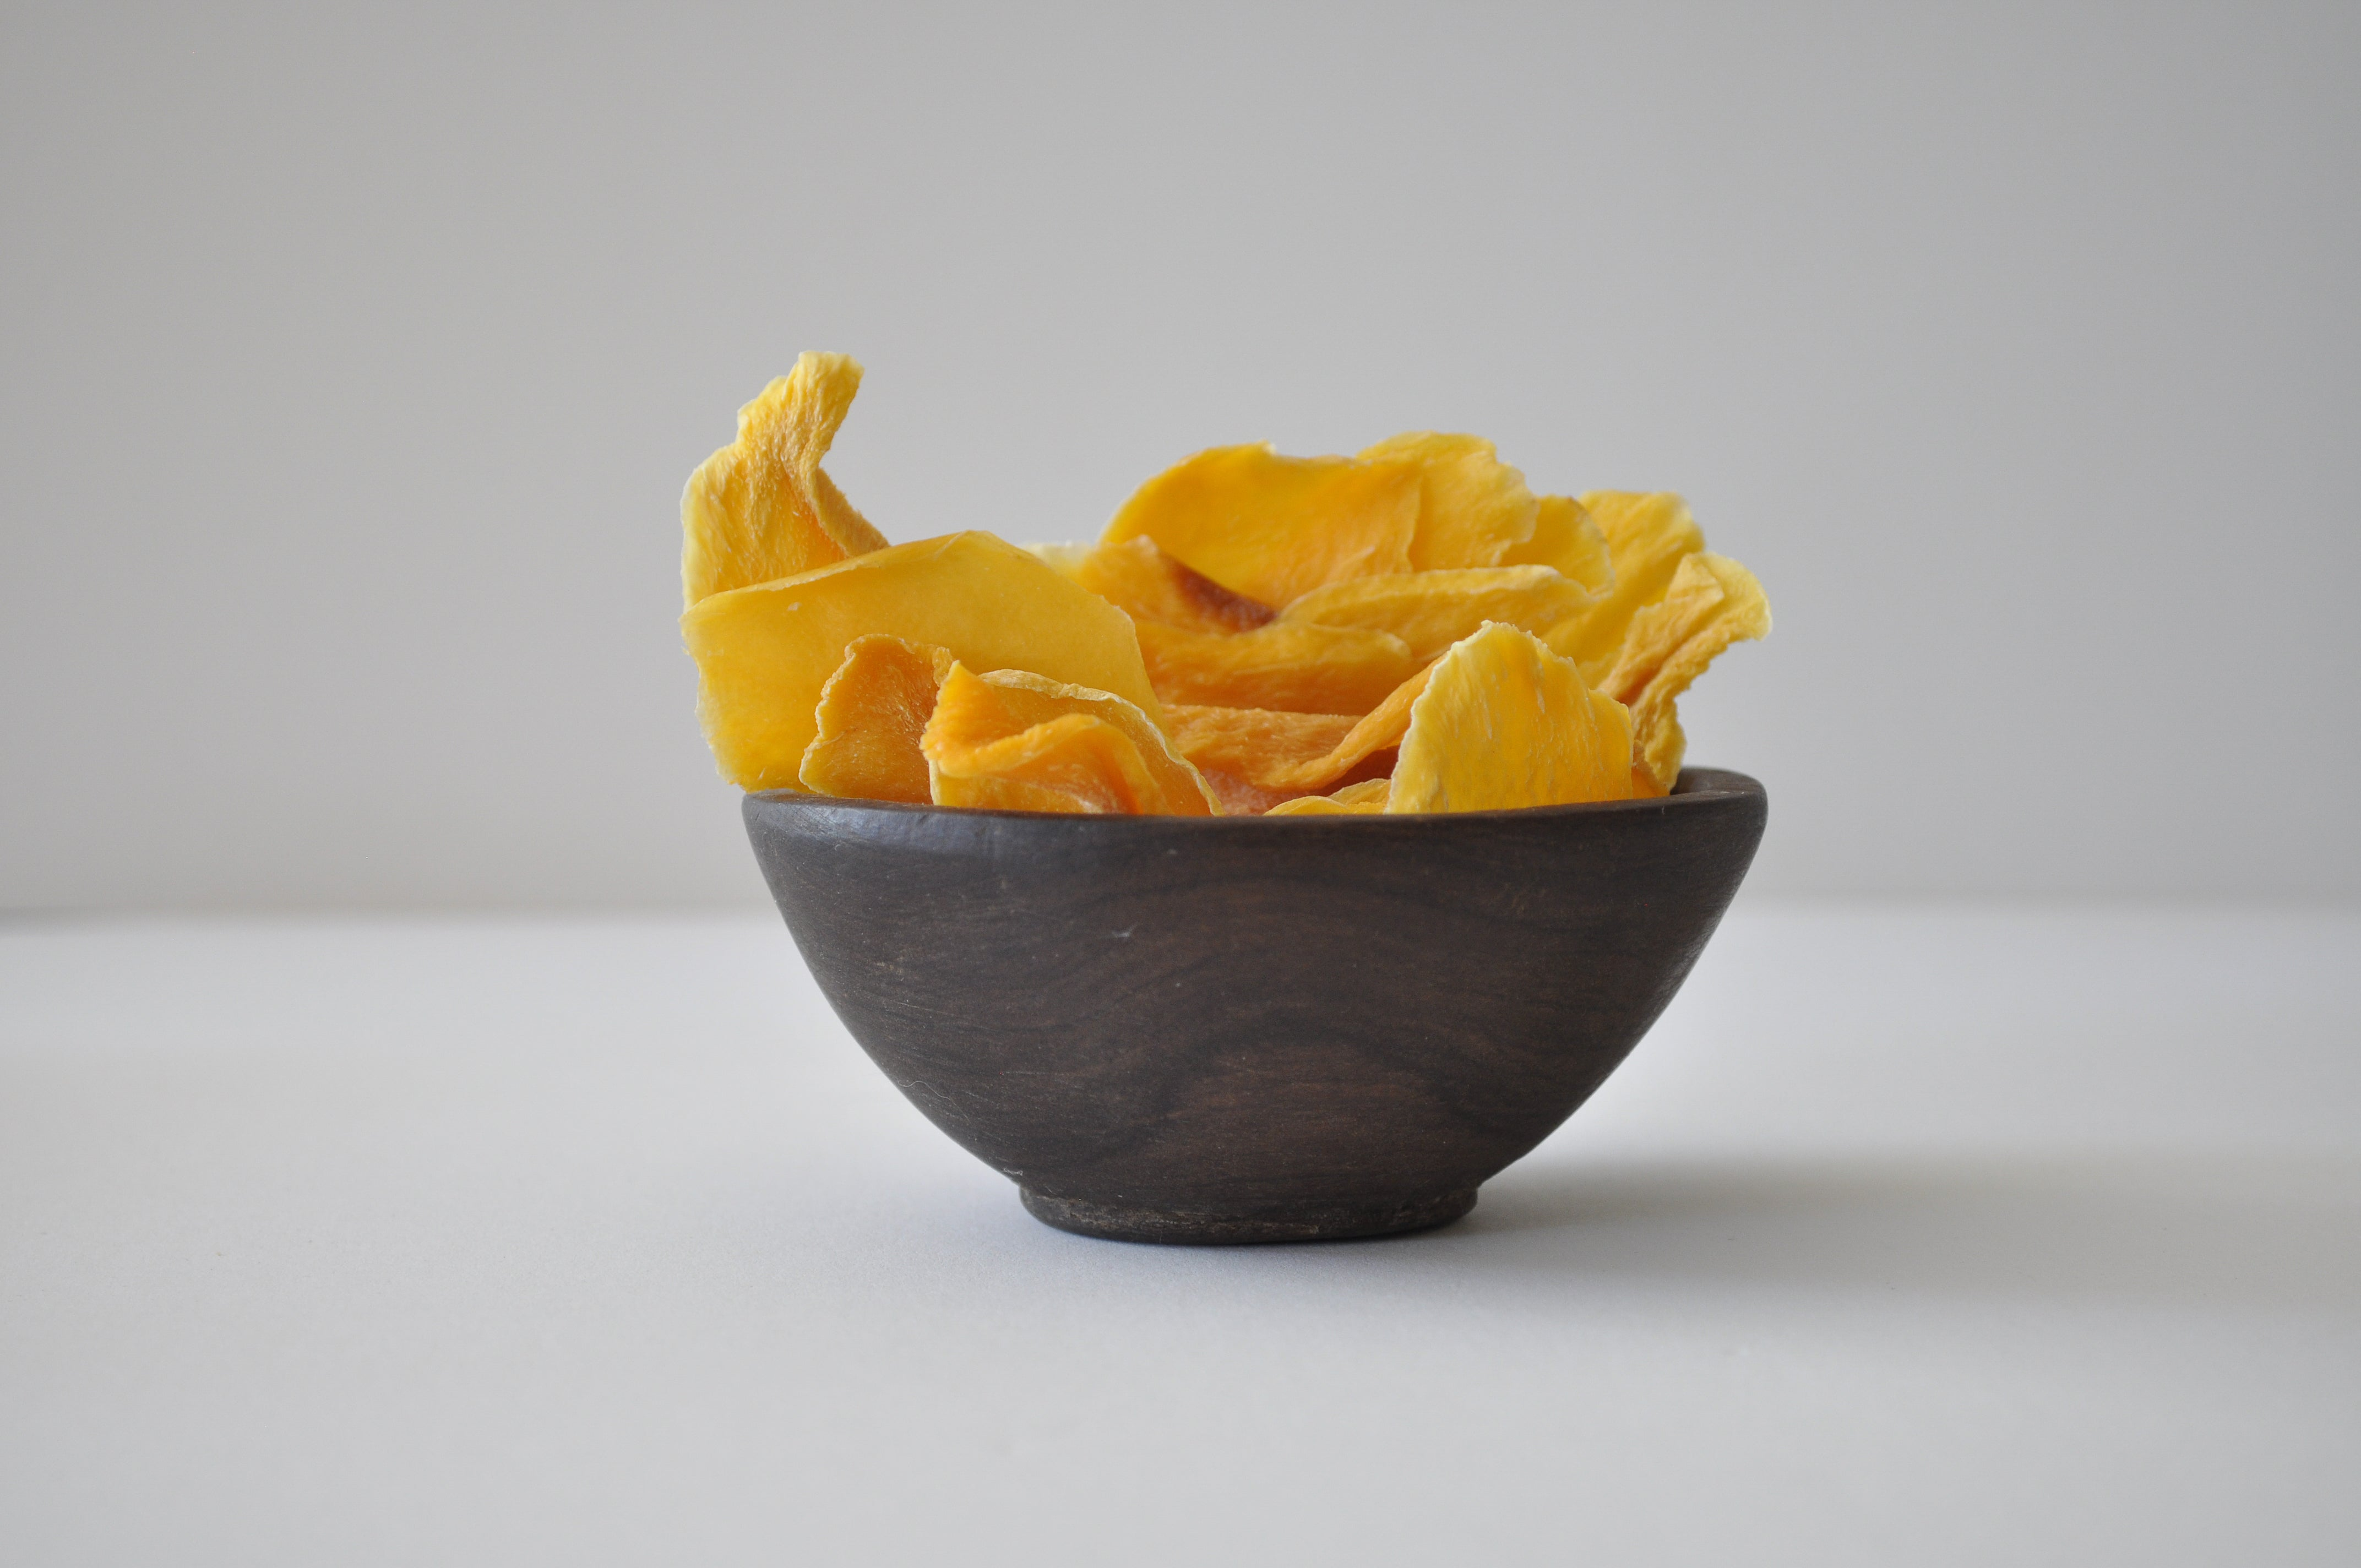 Slices of dried mango in a wooden bowl on a white countertop